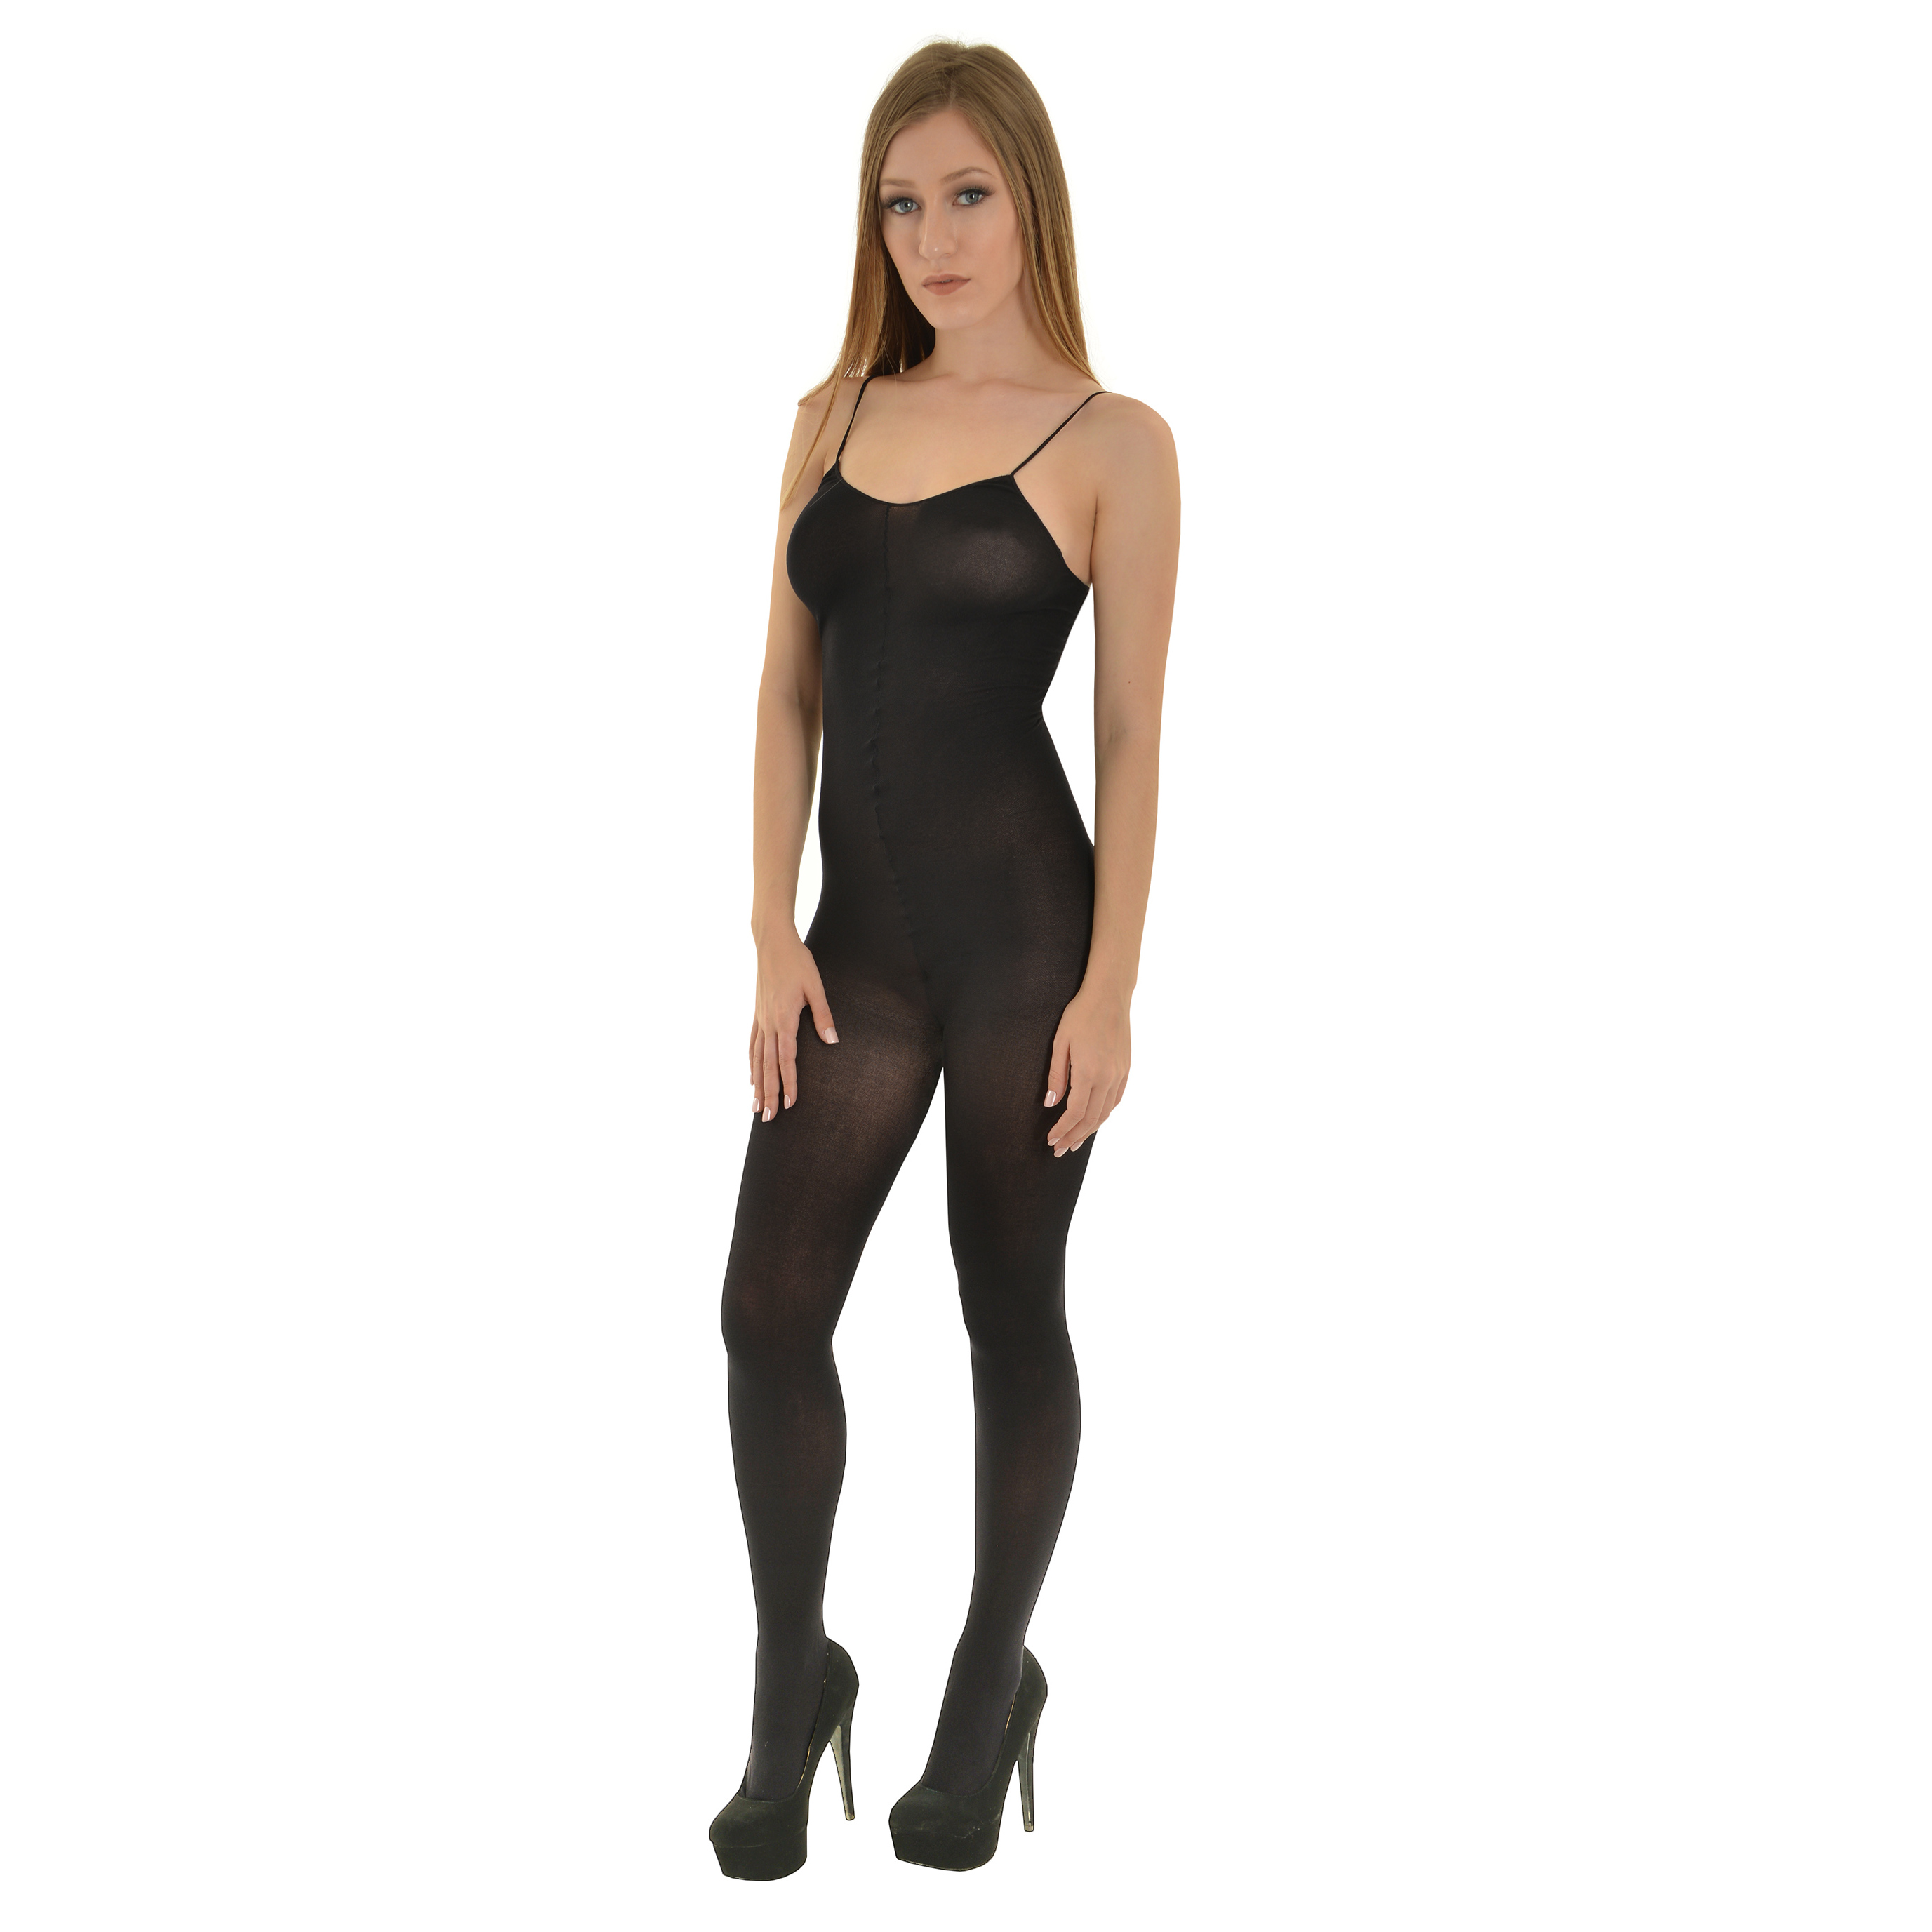 Women for tall Crotchless pantyhose